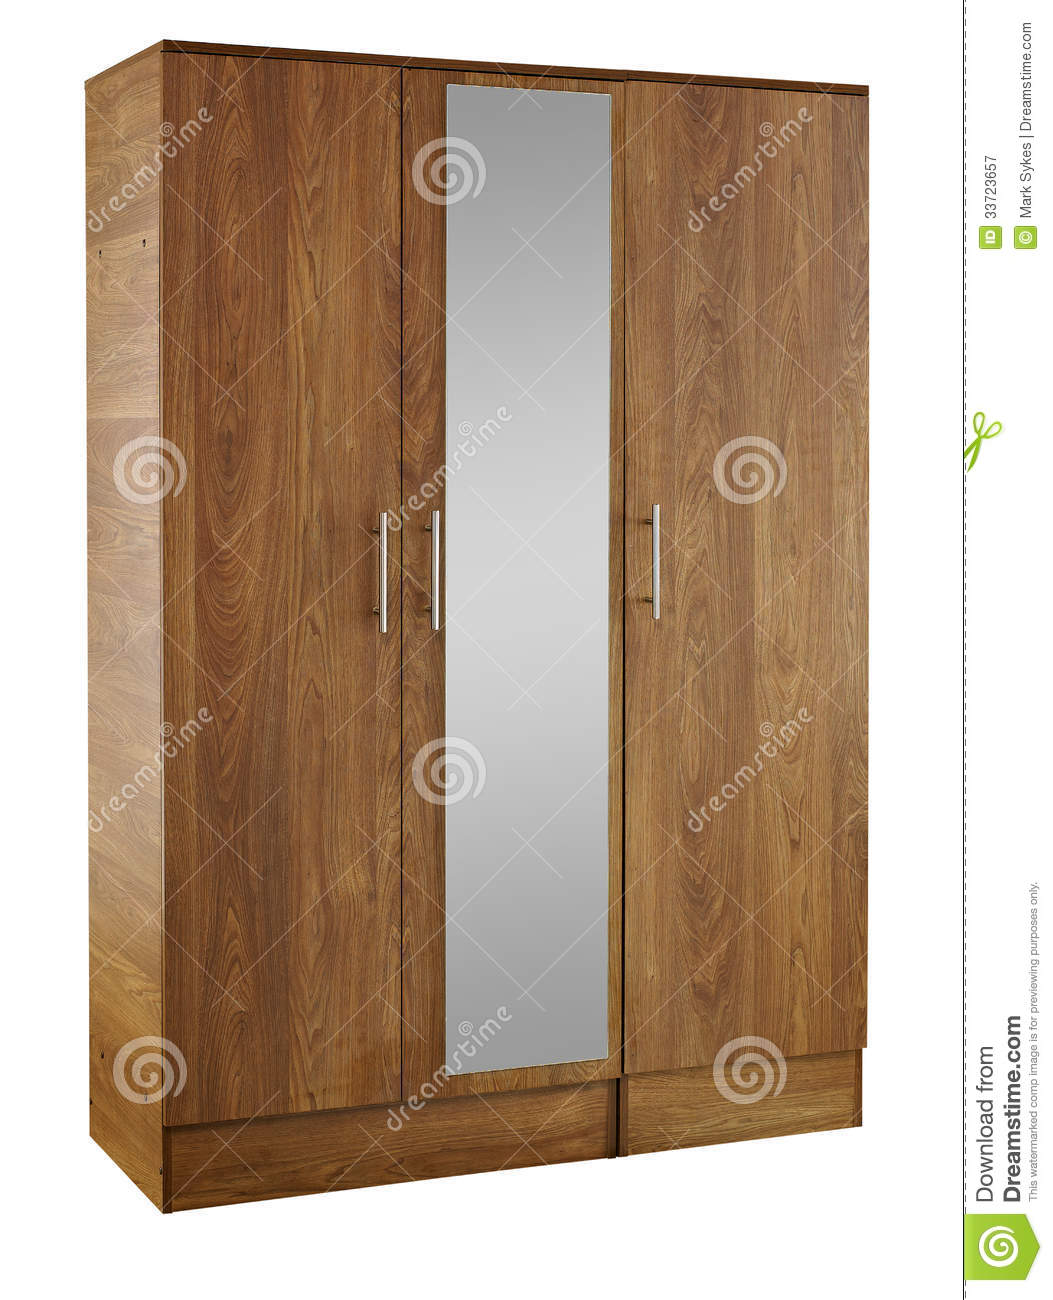 Amazing photo of Brown wood bedroom wardrobe with mirror isolated on white background. with #85A724 color and 1053x1300 pixels